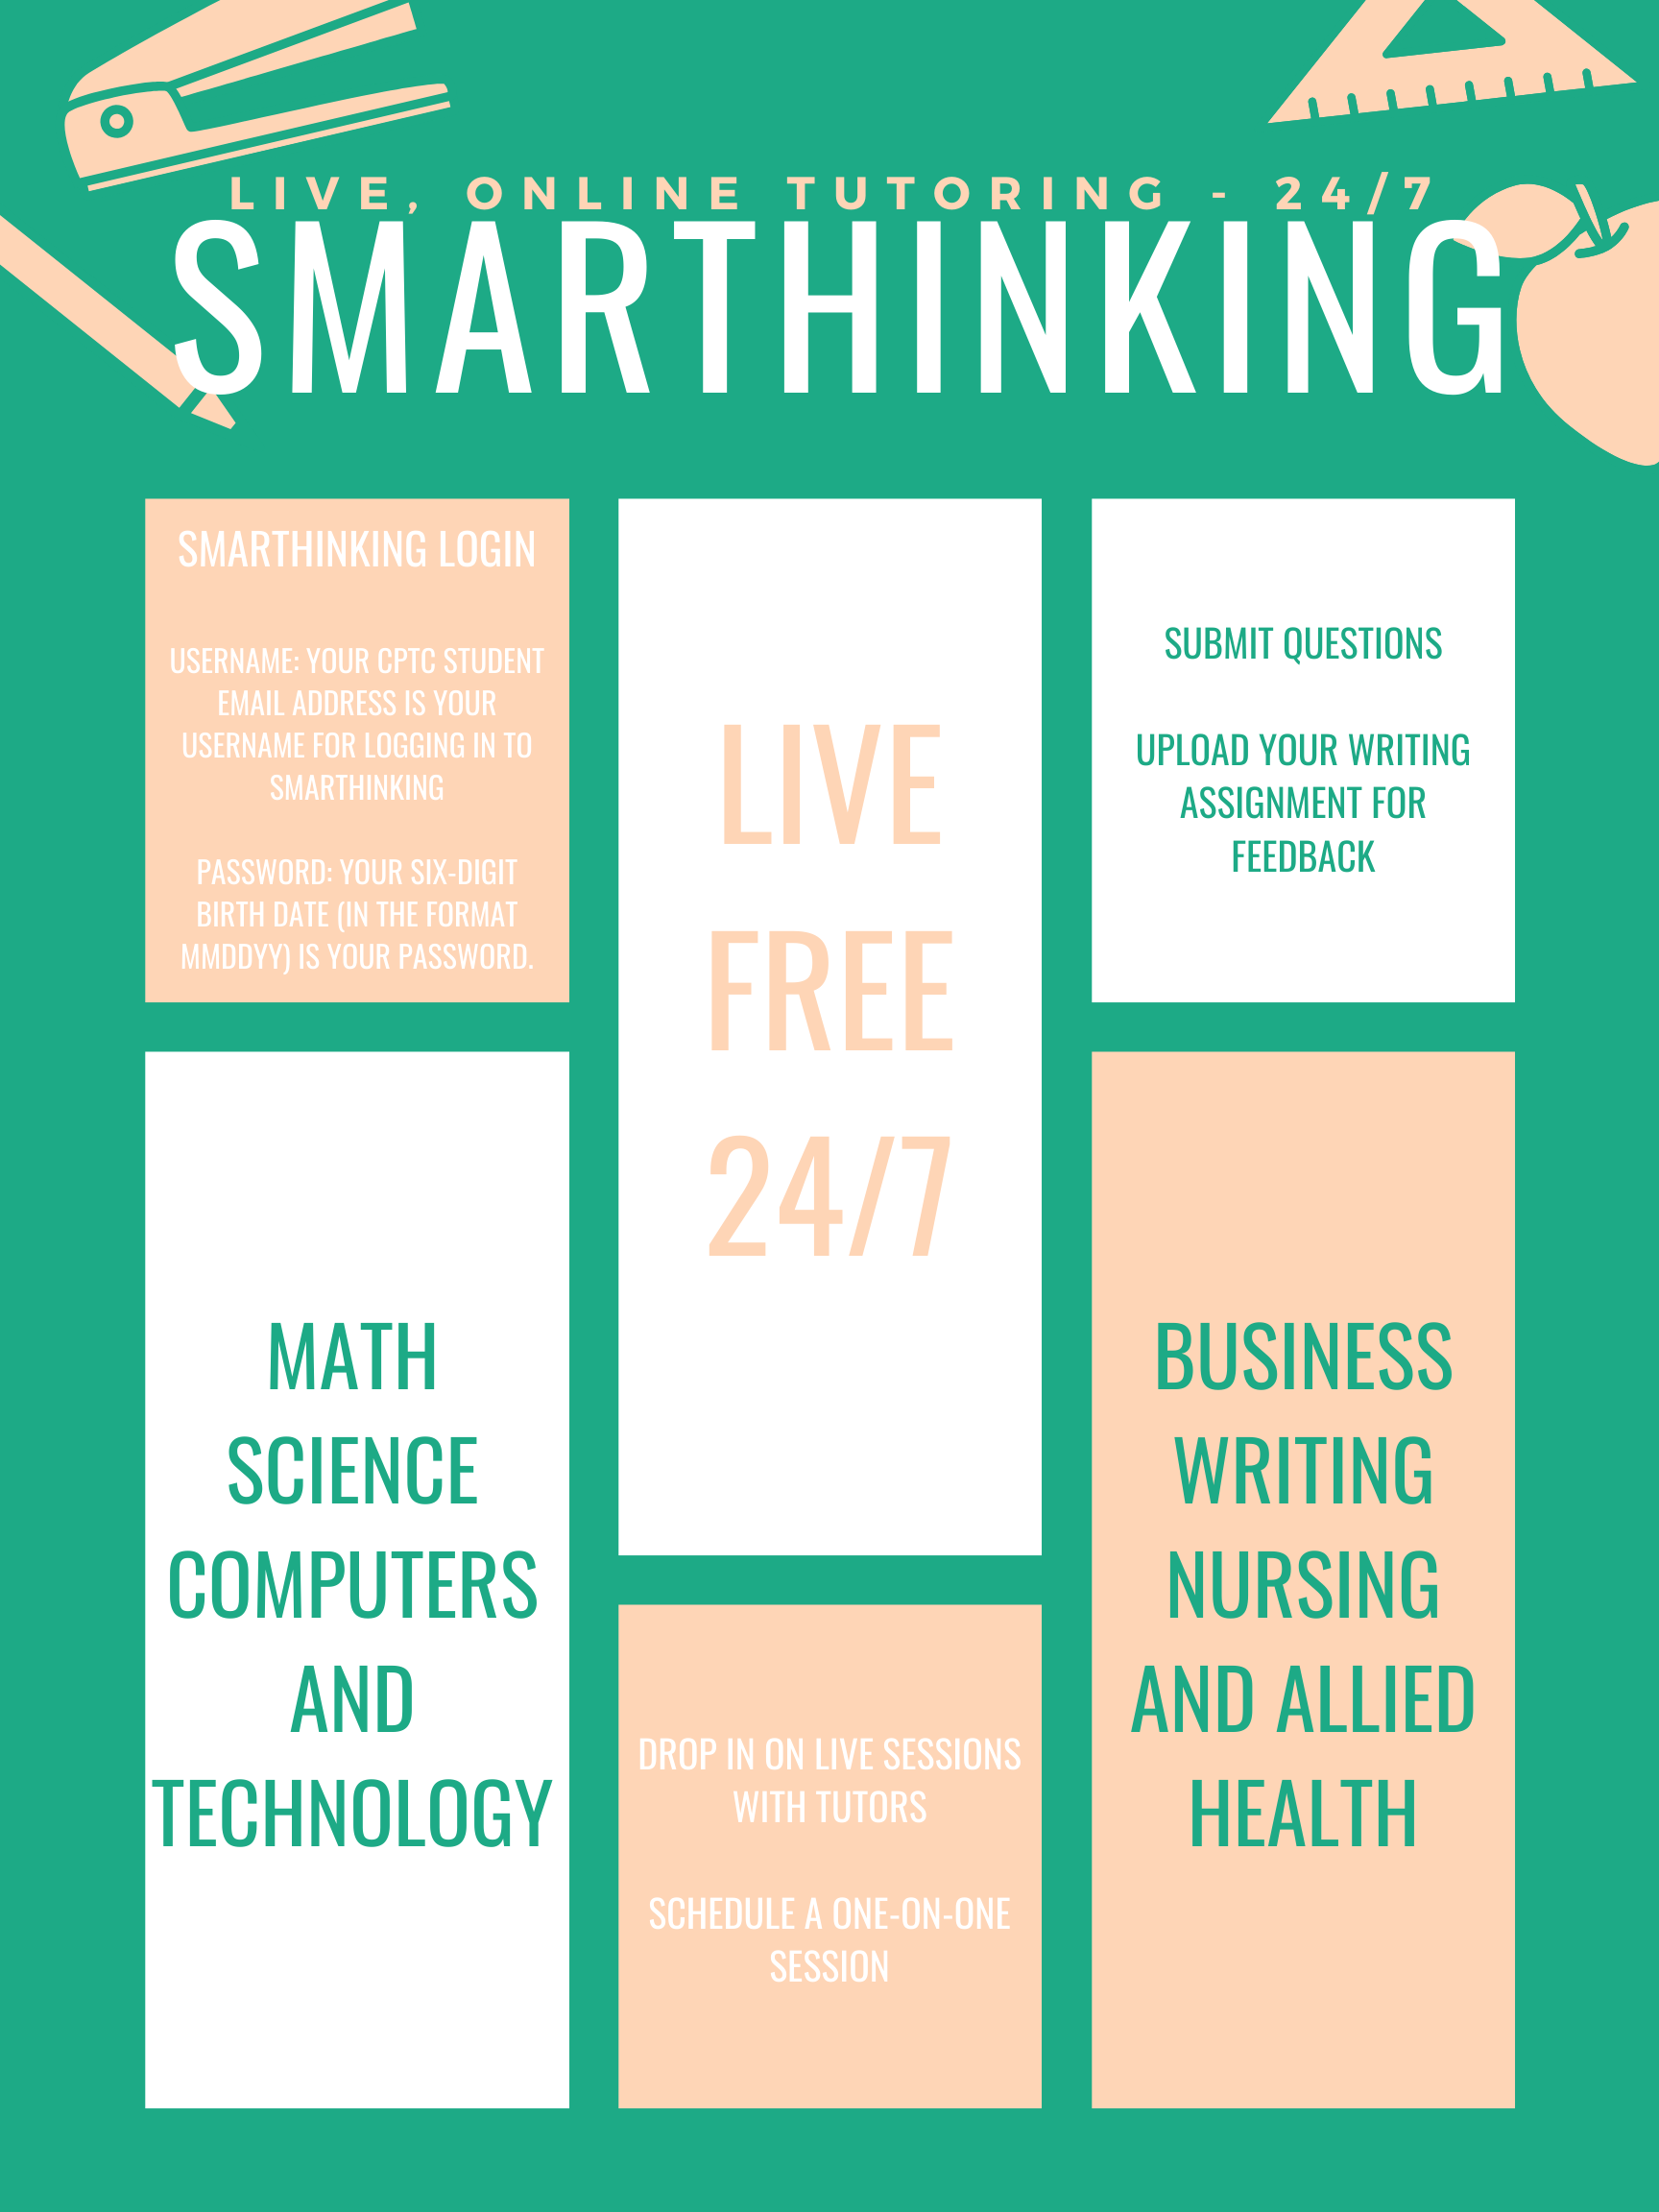 Poster describing Smarthinking, live 24/7 online tutoring offered to CPTC students